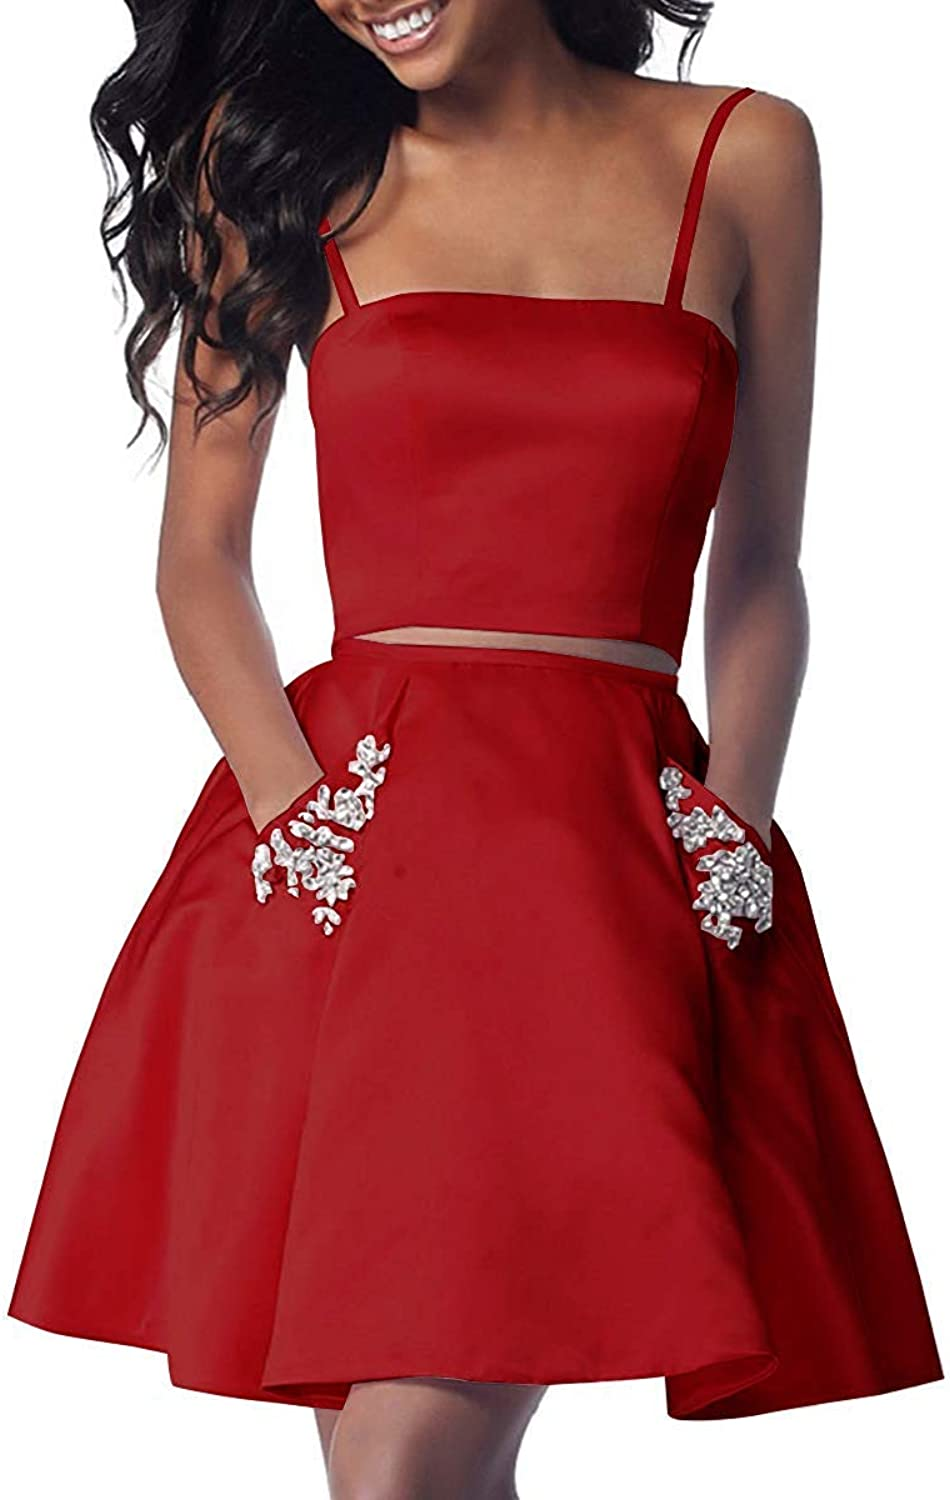 Orcle 2 Piece Short Homecoming Dresses with Pockets Satin Beaded Prom Dress